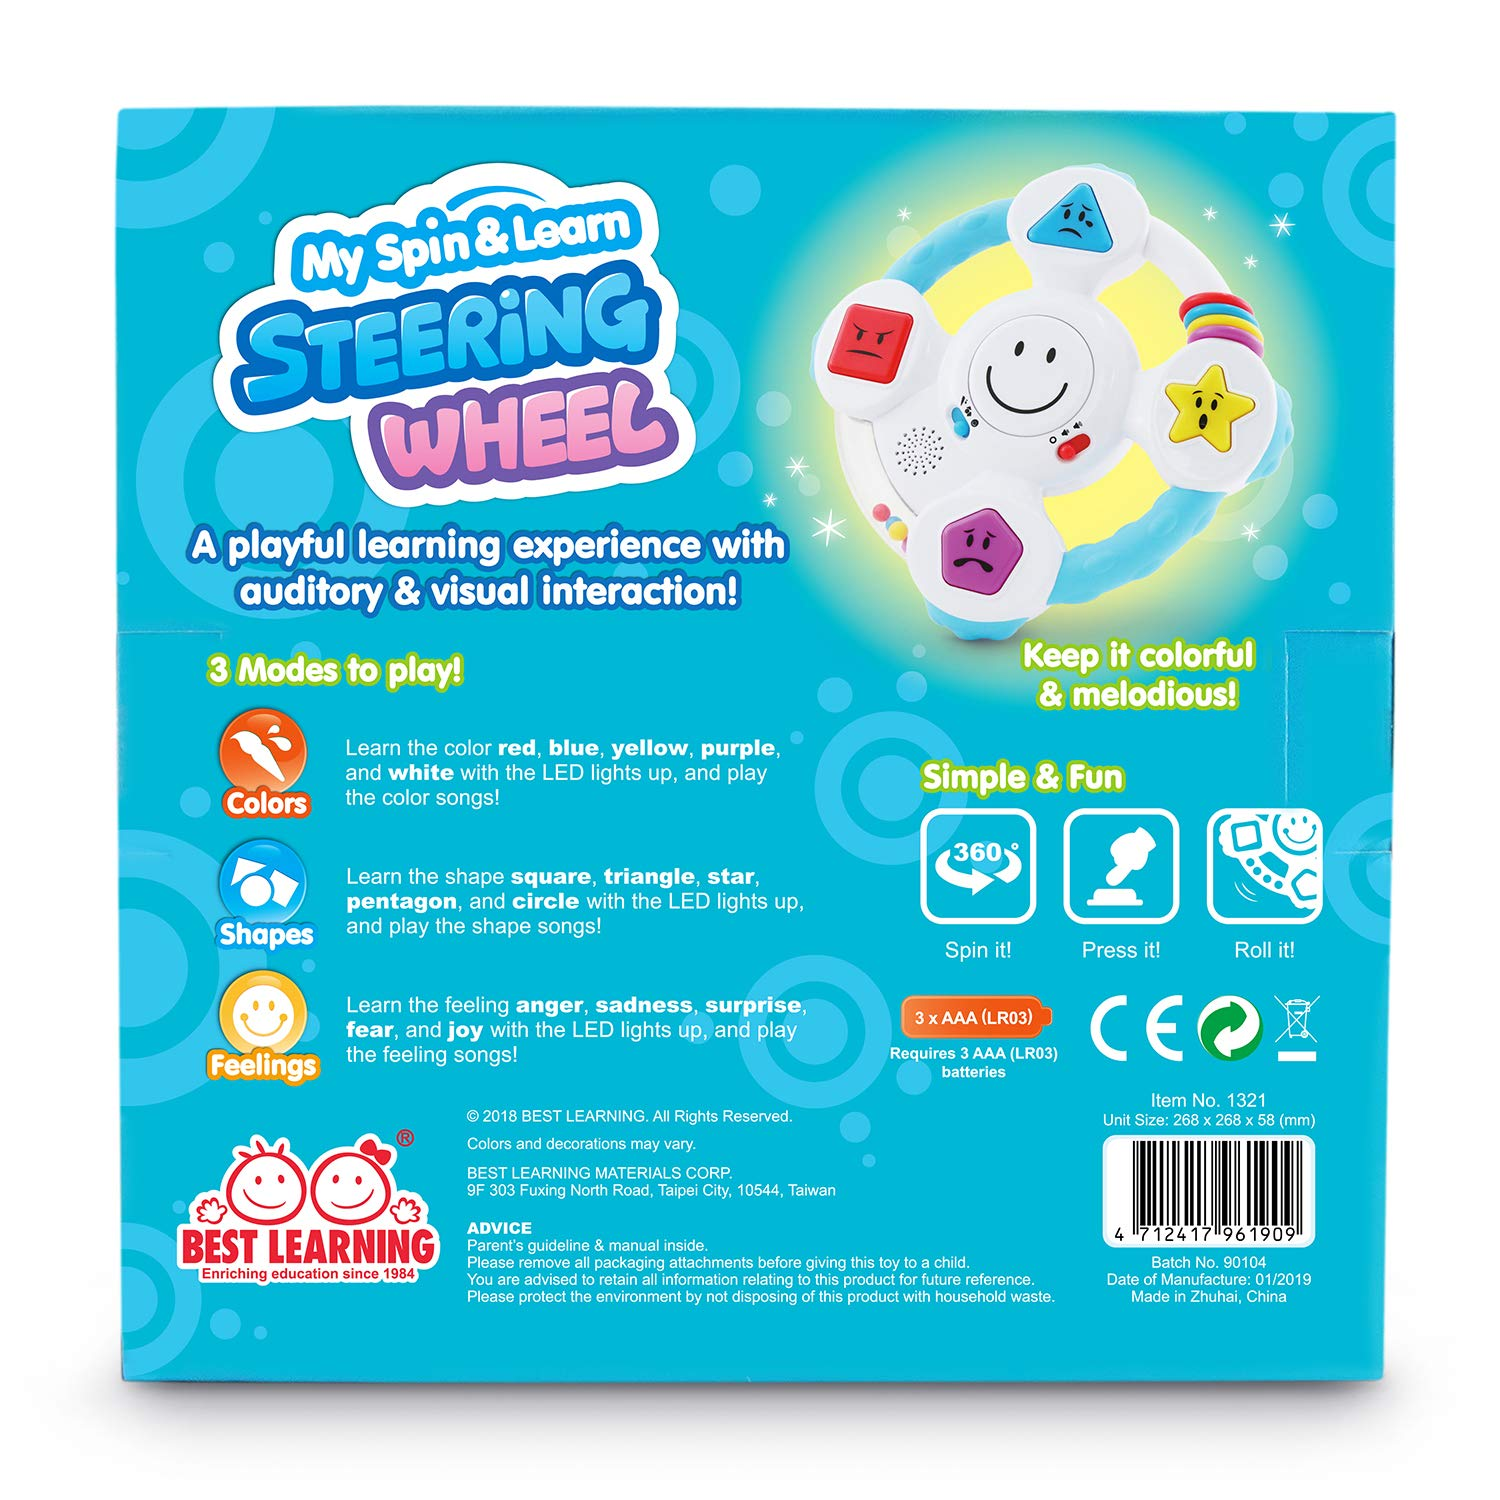 BEST LEARNING My Spin & Learn Steering Wheel - Interactive Educational Light-Up Toddler Toys for 6-36 Months Old Infants & Toddlers - Colors, Shapes, Emotions & Music Game for Babies by BEST LEARNING (Image #8)